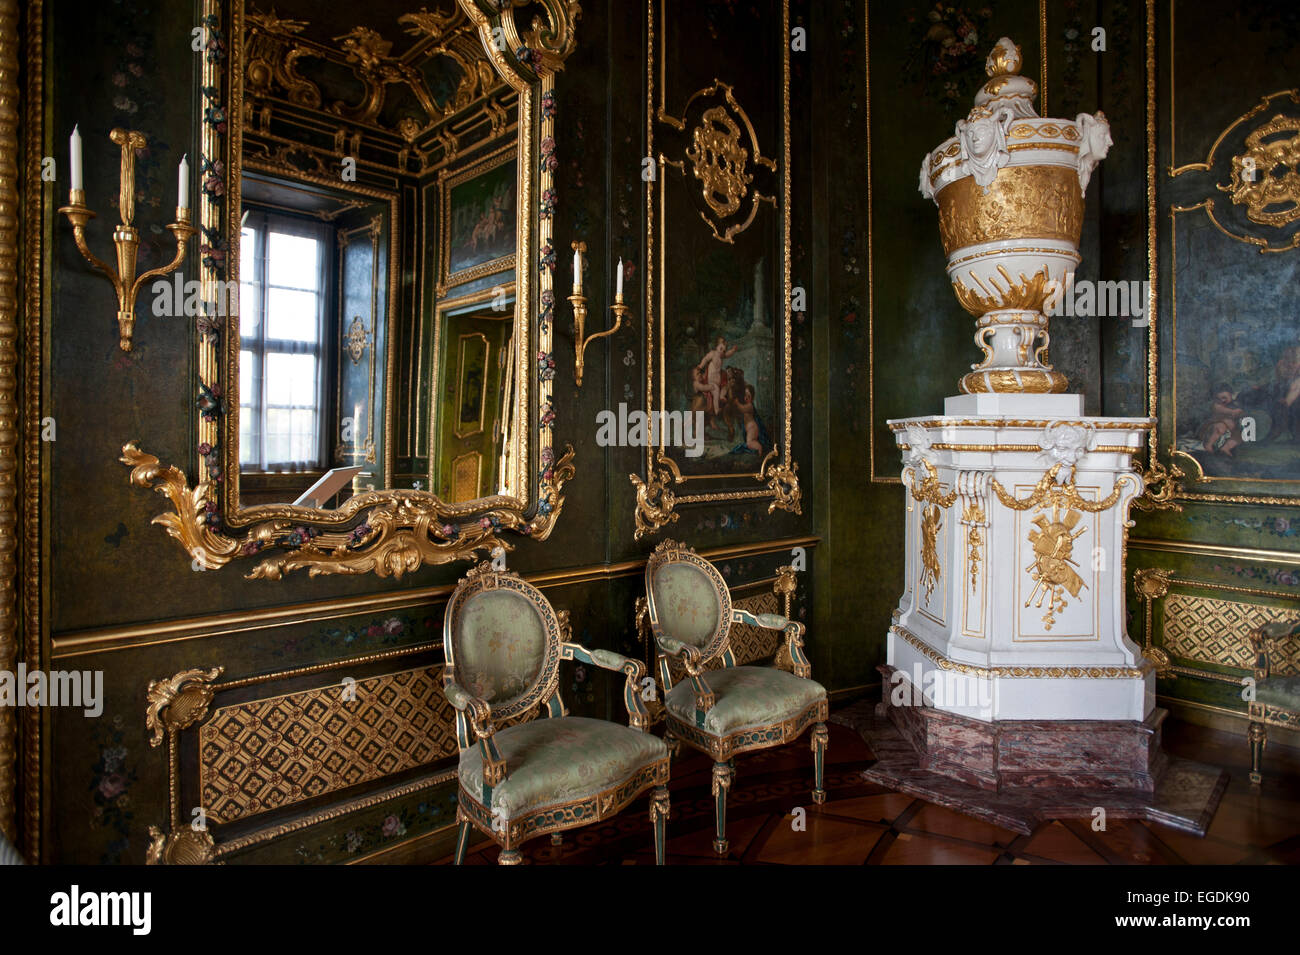 one of the many rooms in the Wuerzburg Residence, Wuerzburg, Franconia, Bavaria, Germany - Stock Image